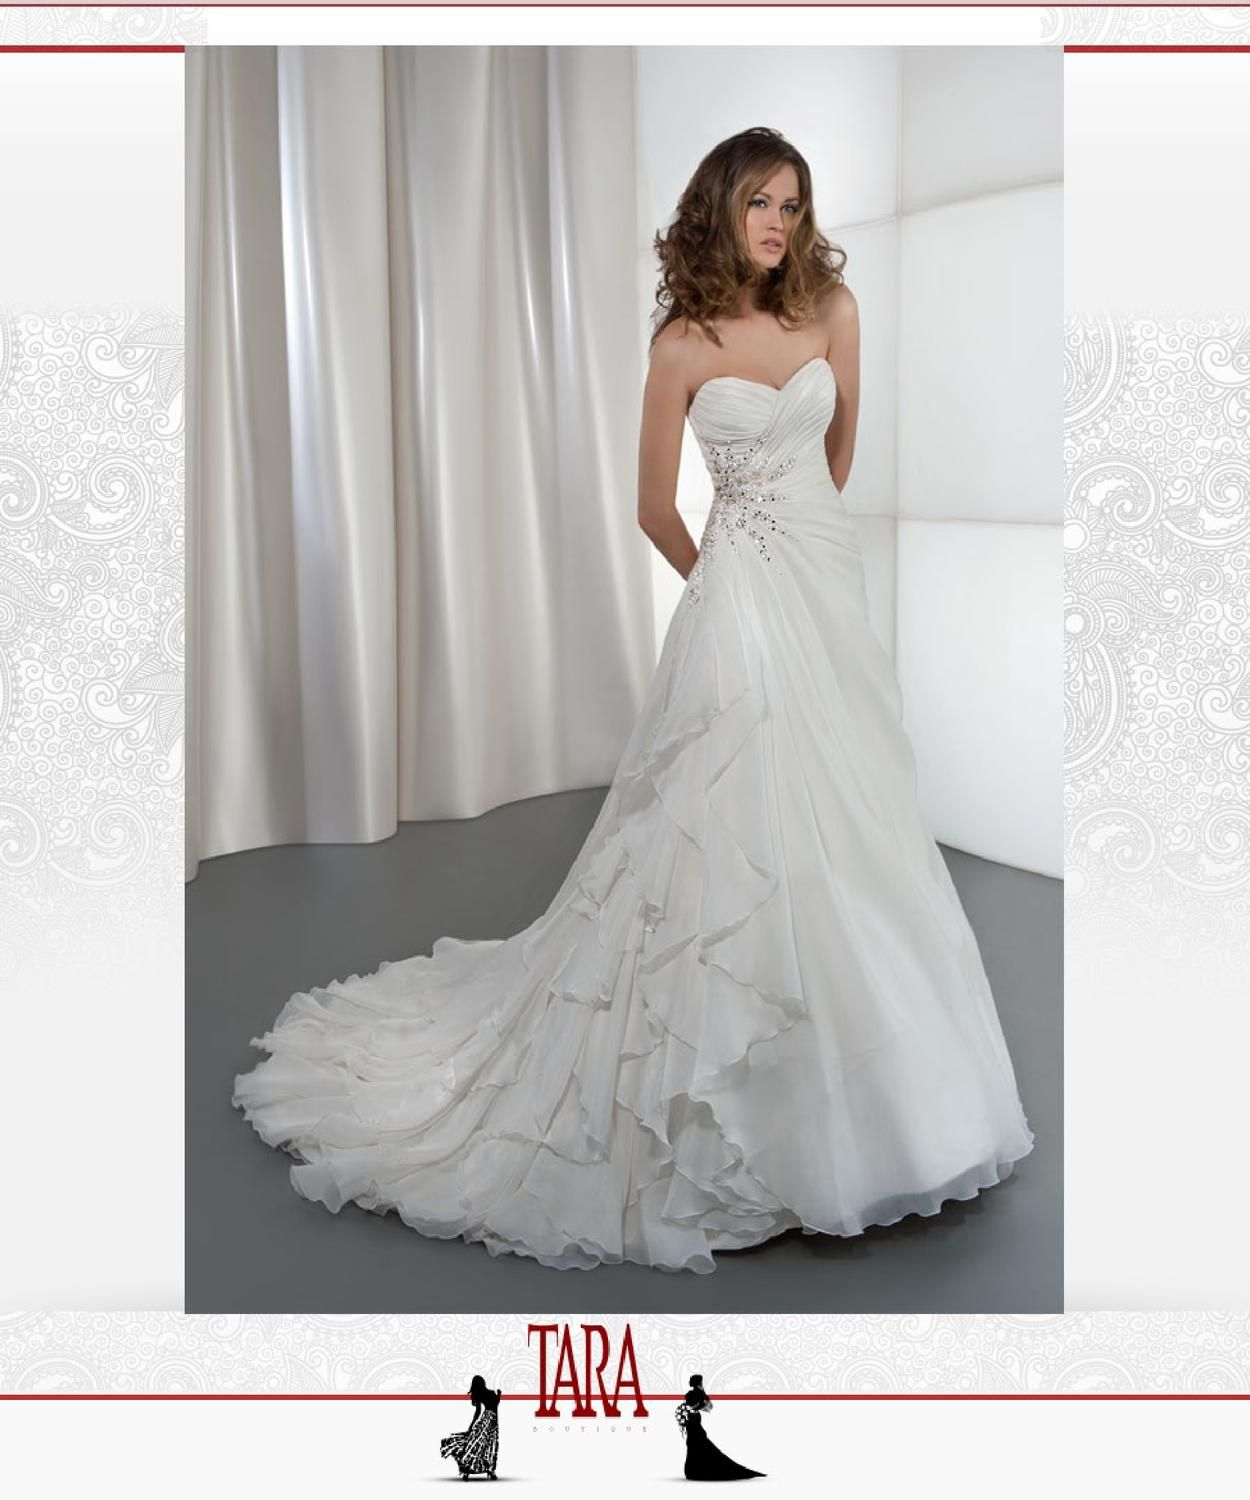 ISSUU - Collection Mariage Boutique Tara by SITTI